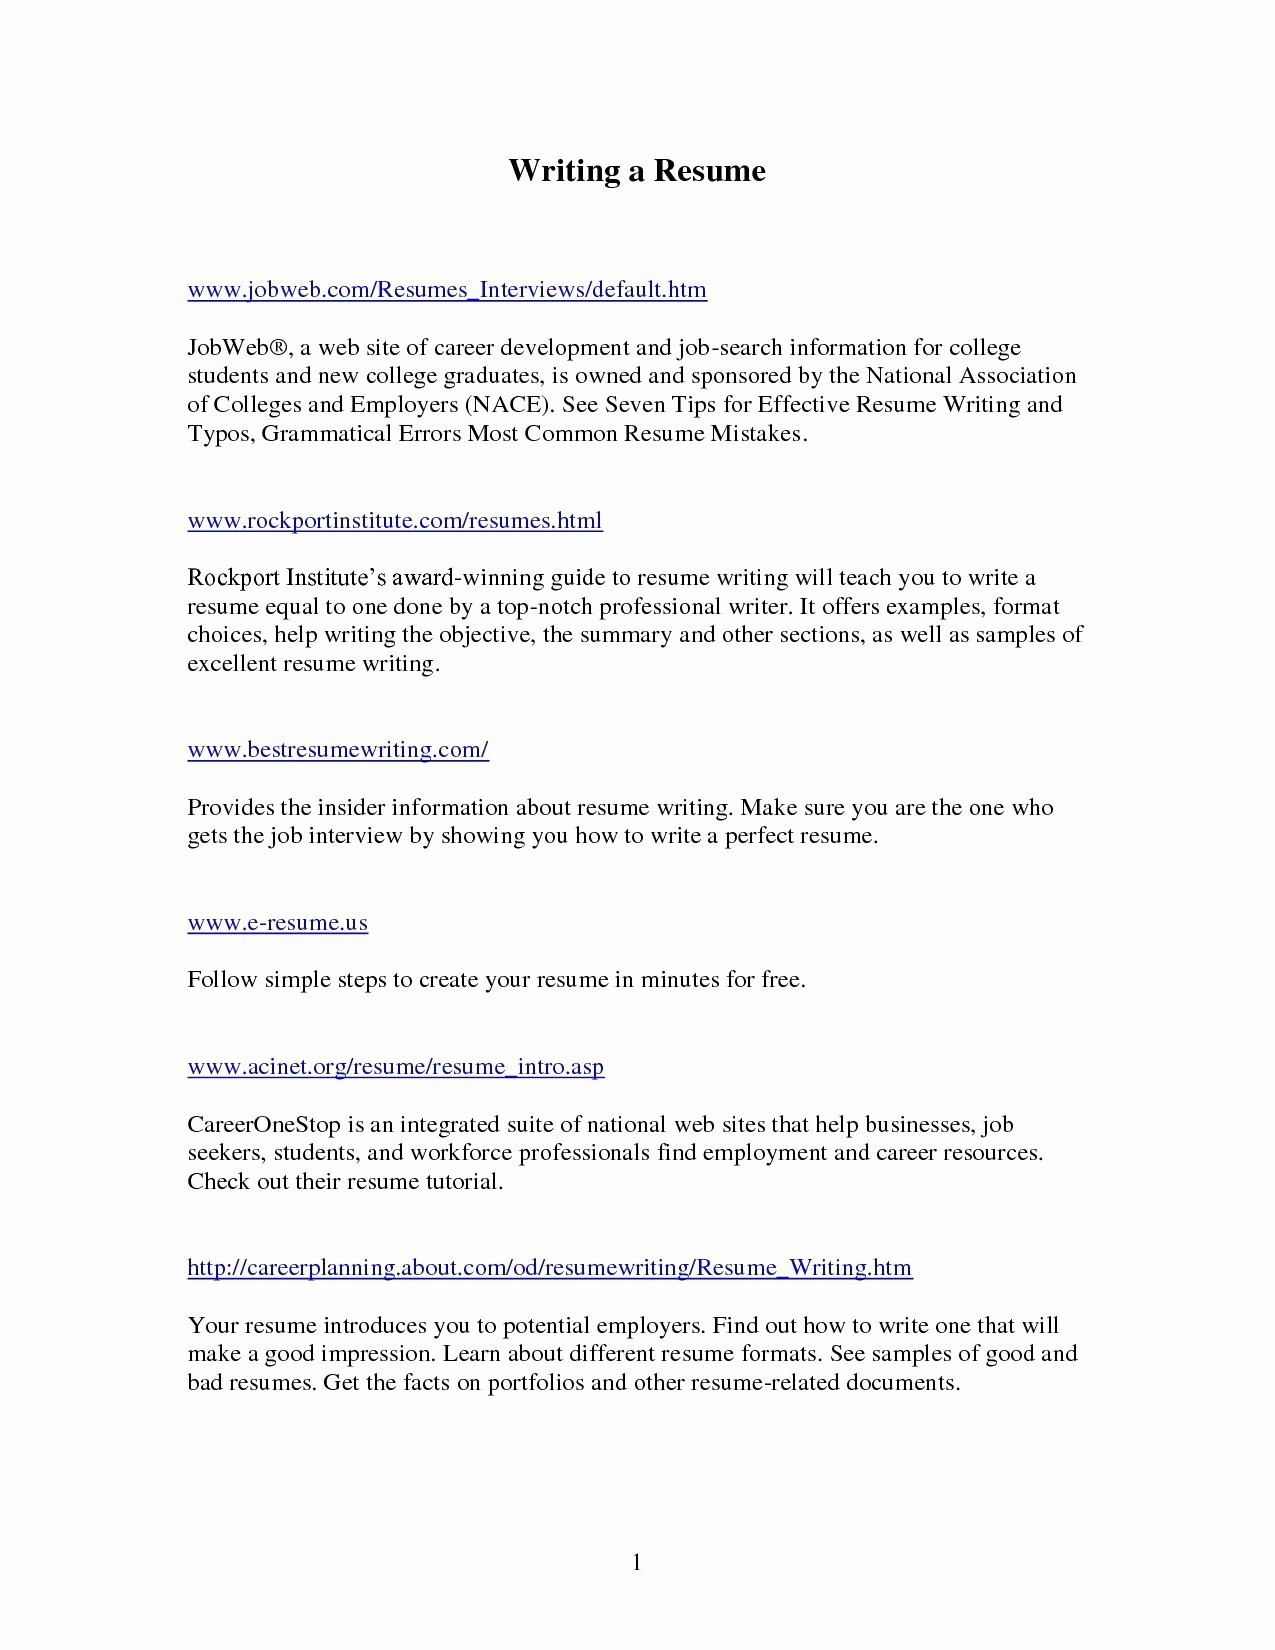 Recent College Graduate Resume - College Graduate Resume Examples New How to Make A Work Resume